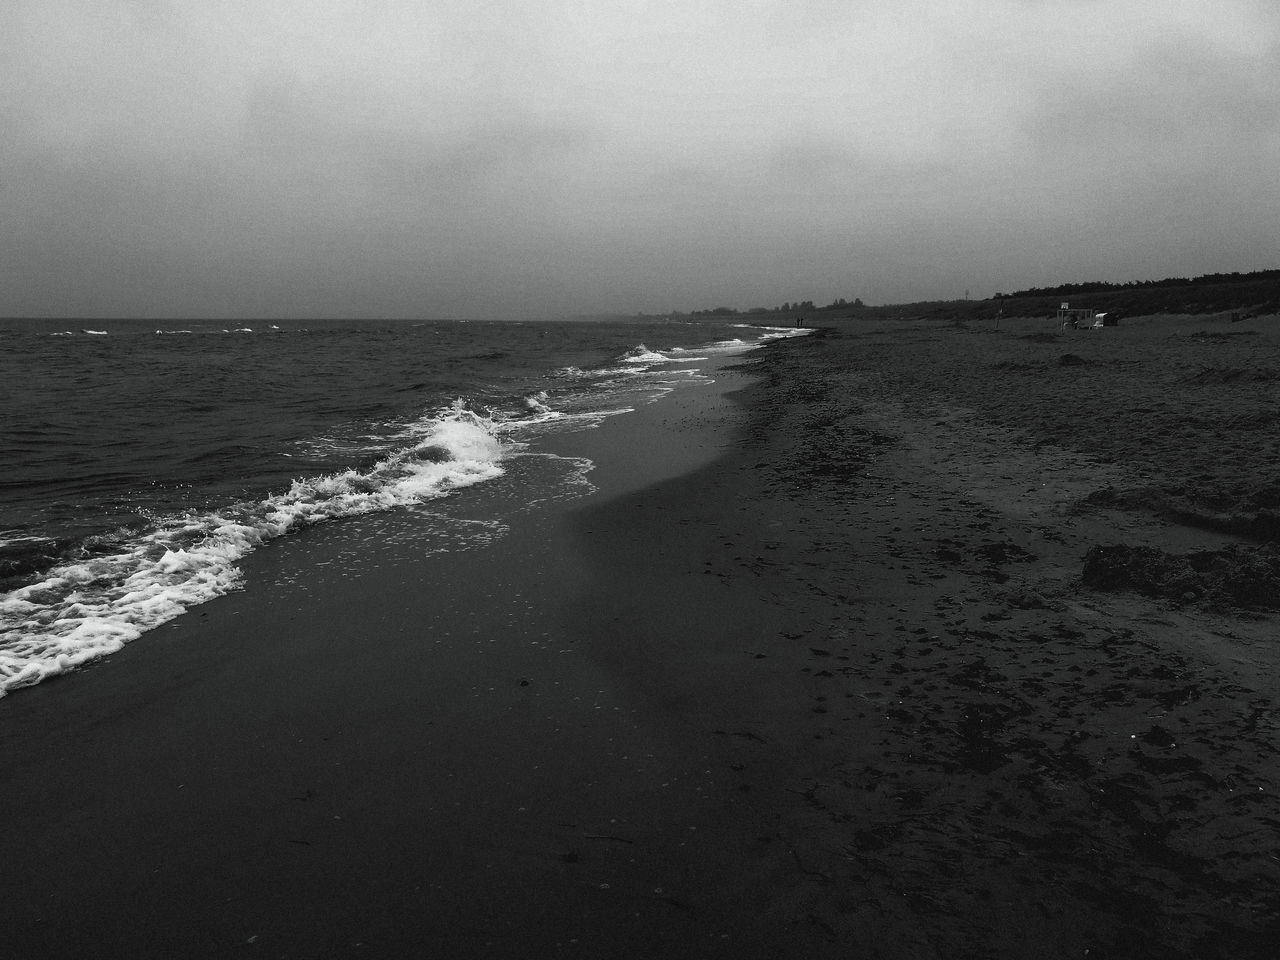 film noir. Beach Beauty In Nature Day Horizon Over Water Nature No People Outdoors Sand Scenics Sea Sky Tranquility Water Wave